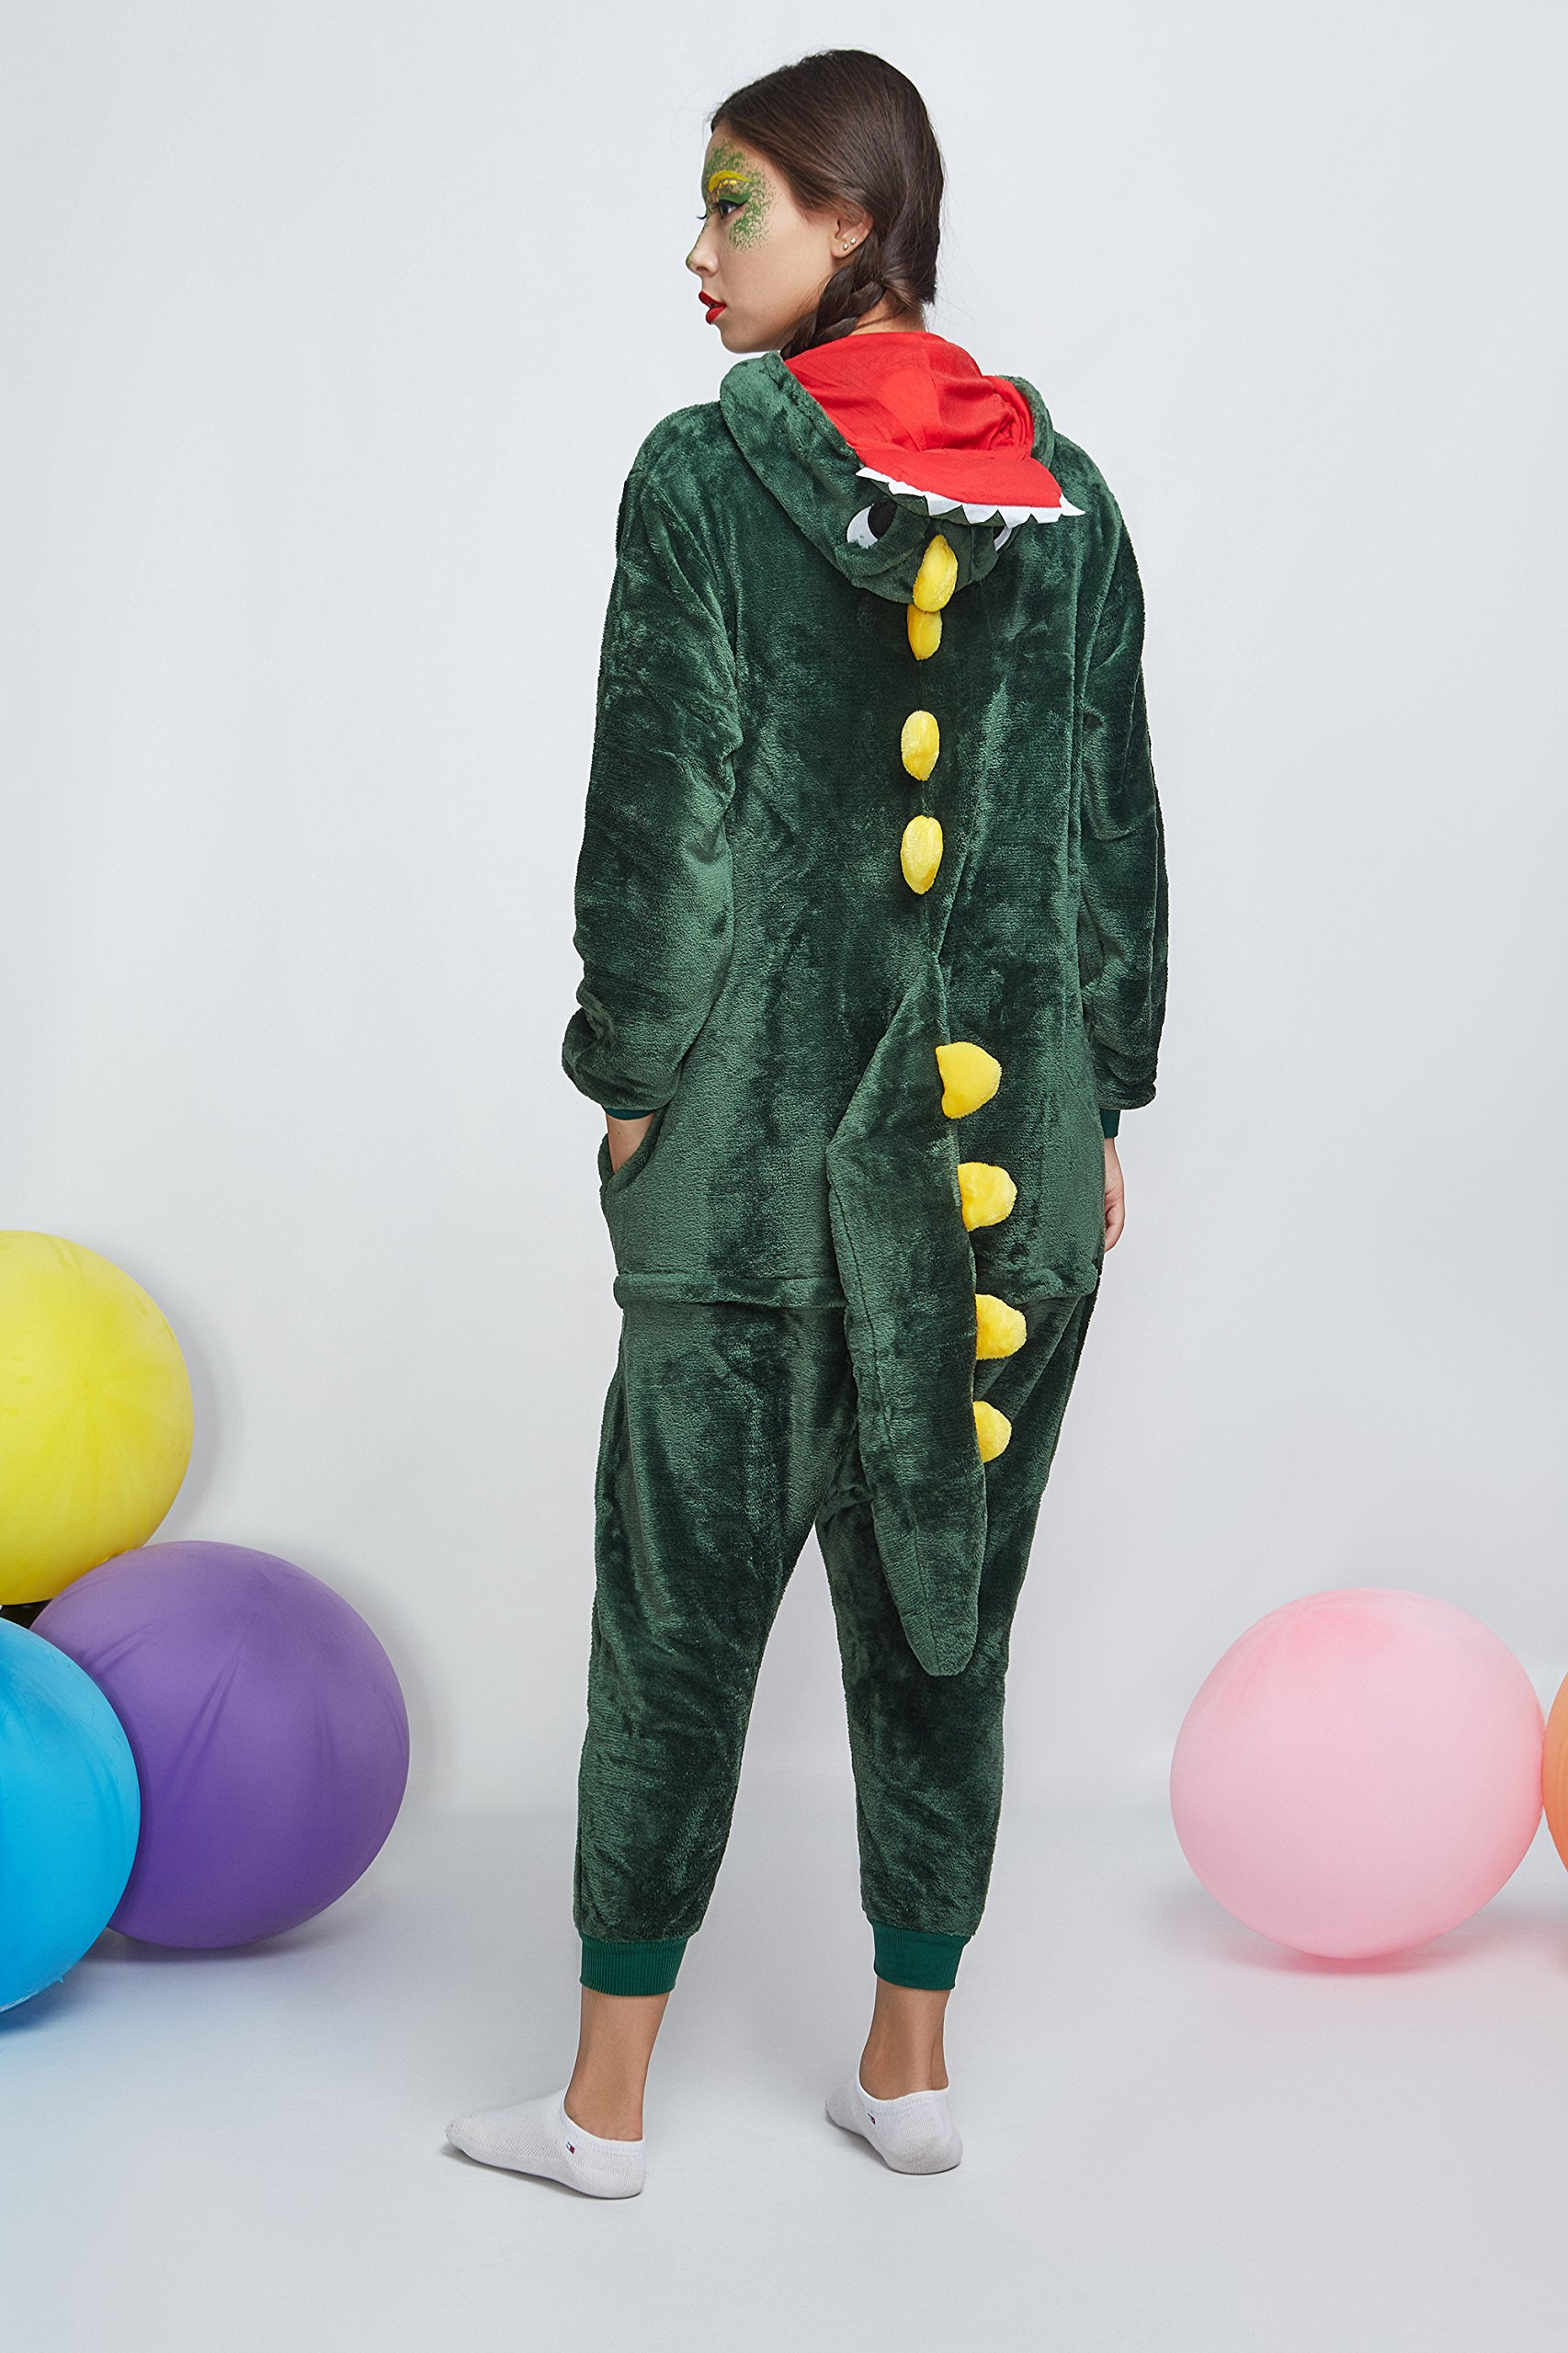 Adult Dragon Kigurumi Animal Onesie Pajamas Plush Onsie One Piece Cosplay Costume (Small, Green) by Nothing But Love (Image #2)